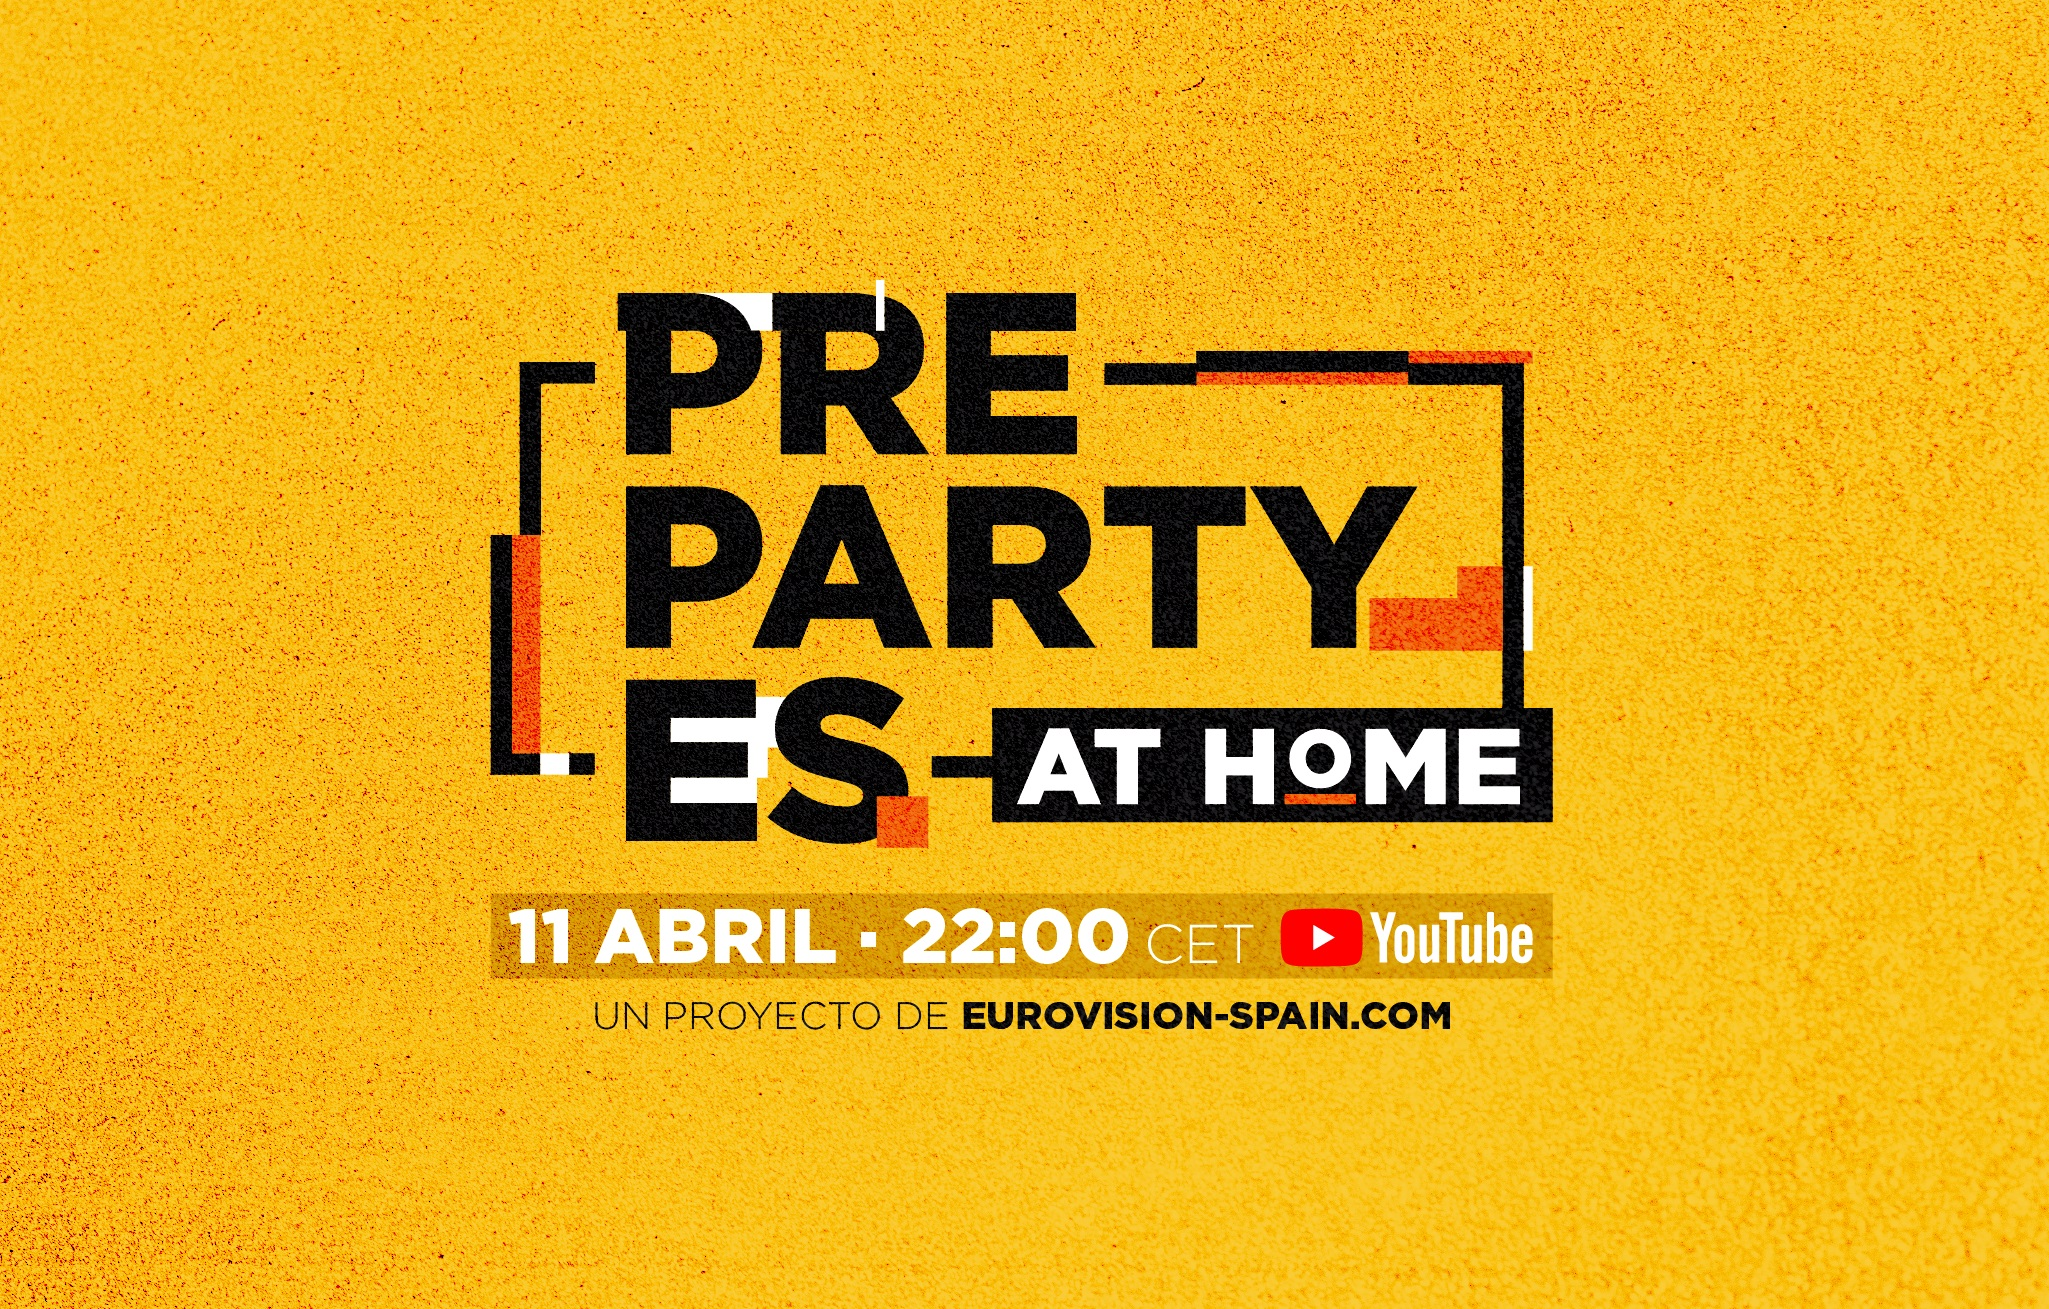 EsPreParty at Home!